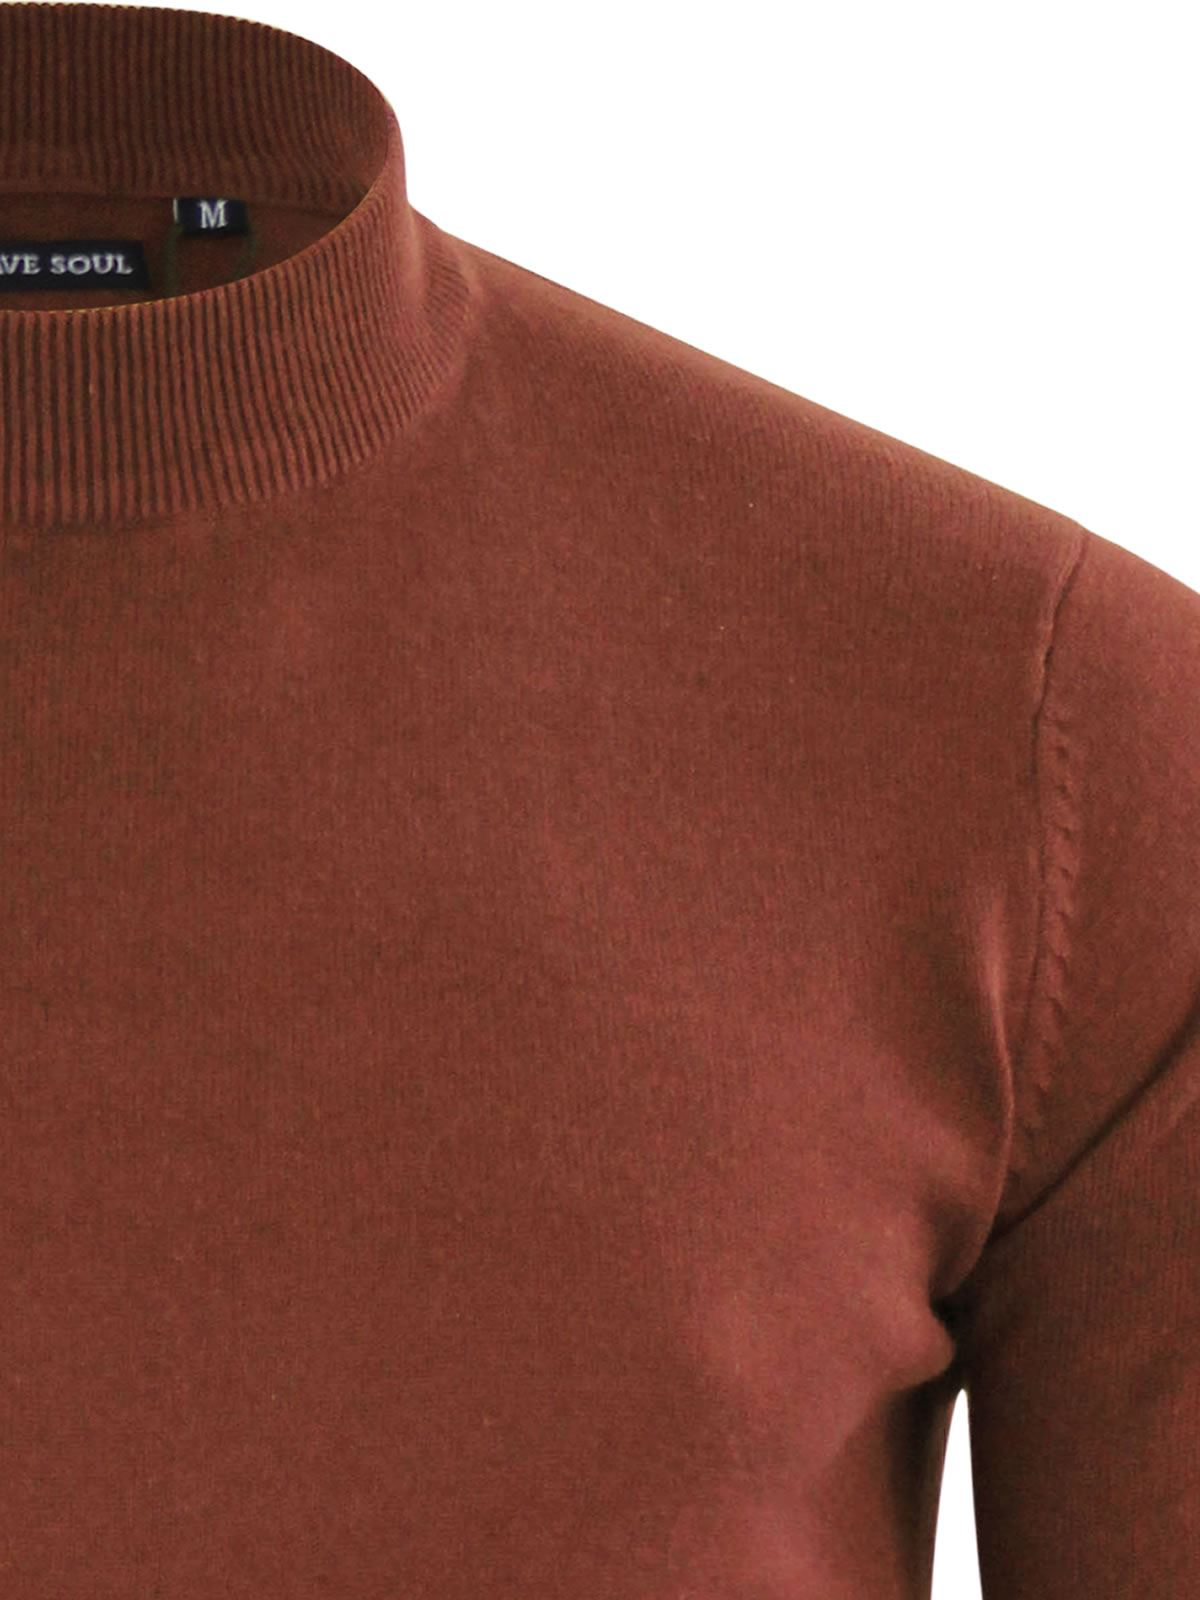 Mens-Jumper-Brave-Soul-Turtle-Neck-Cotton-Pull-Over-Sweater thumbnail 22